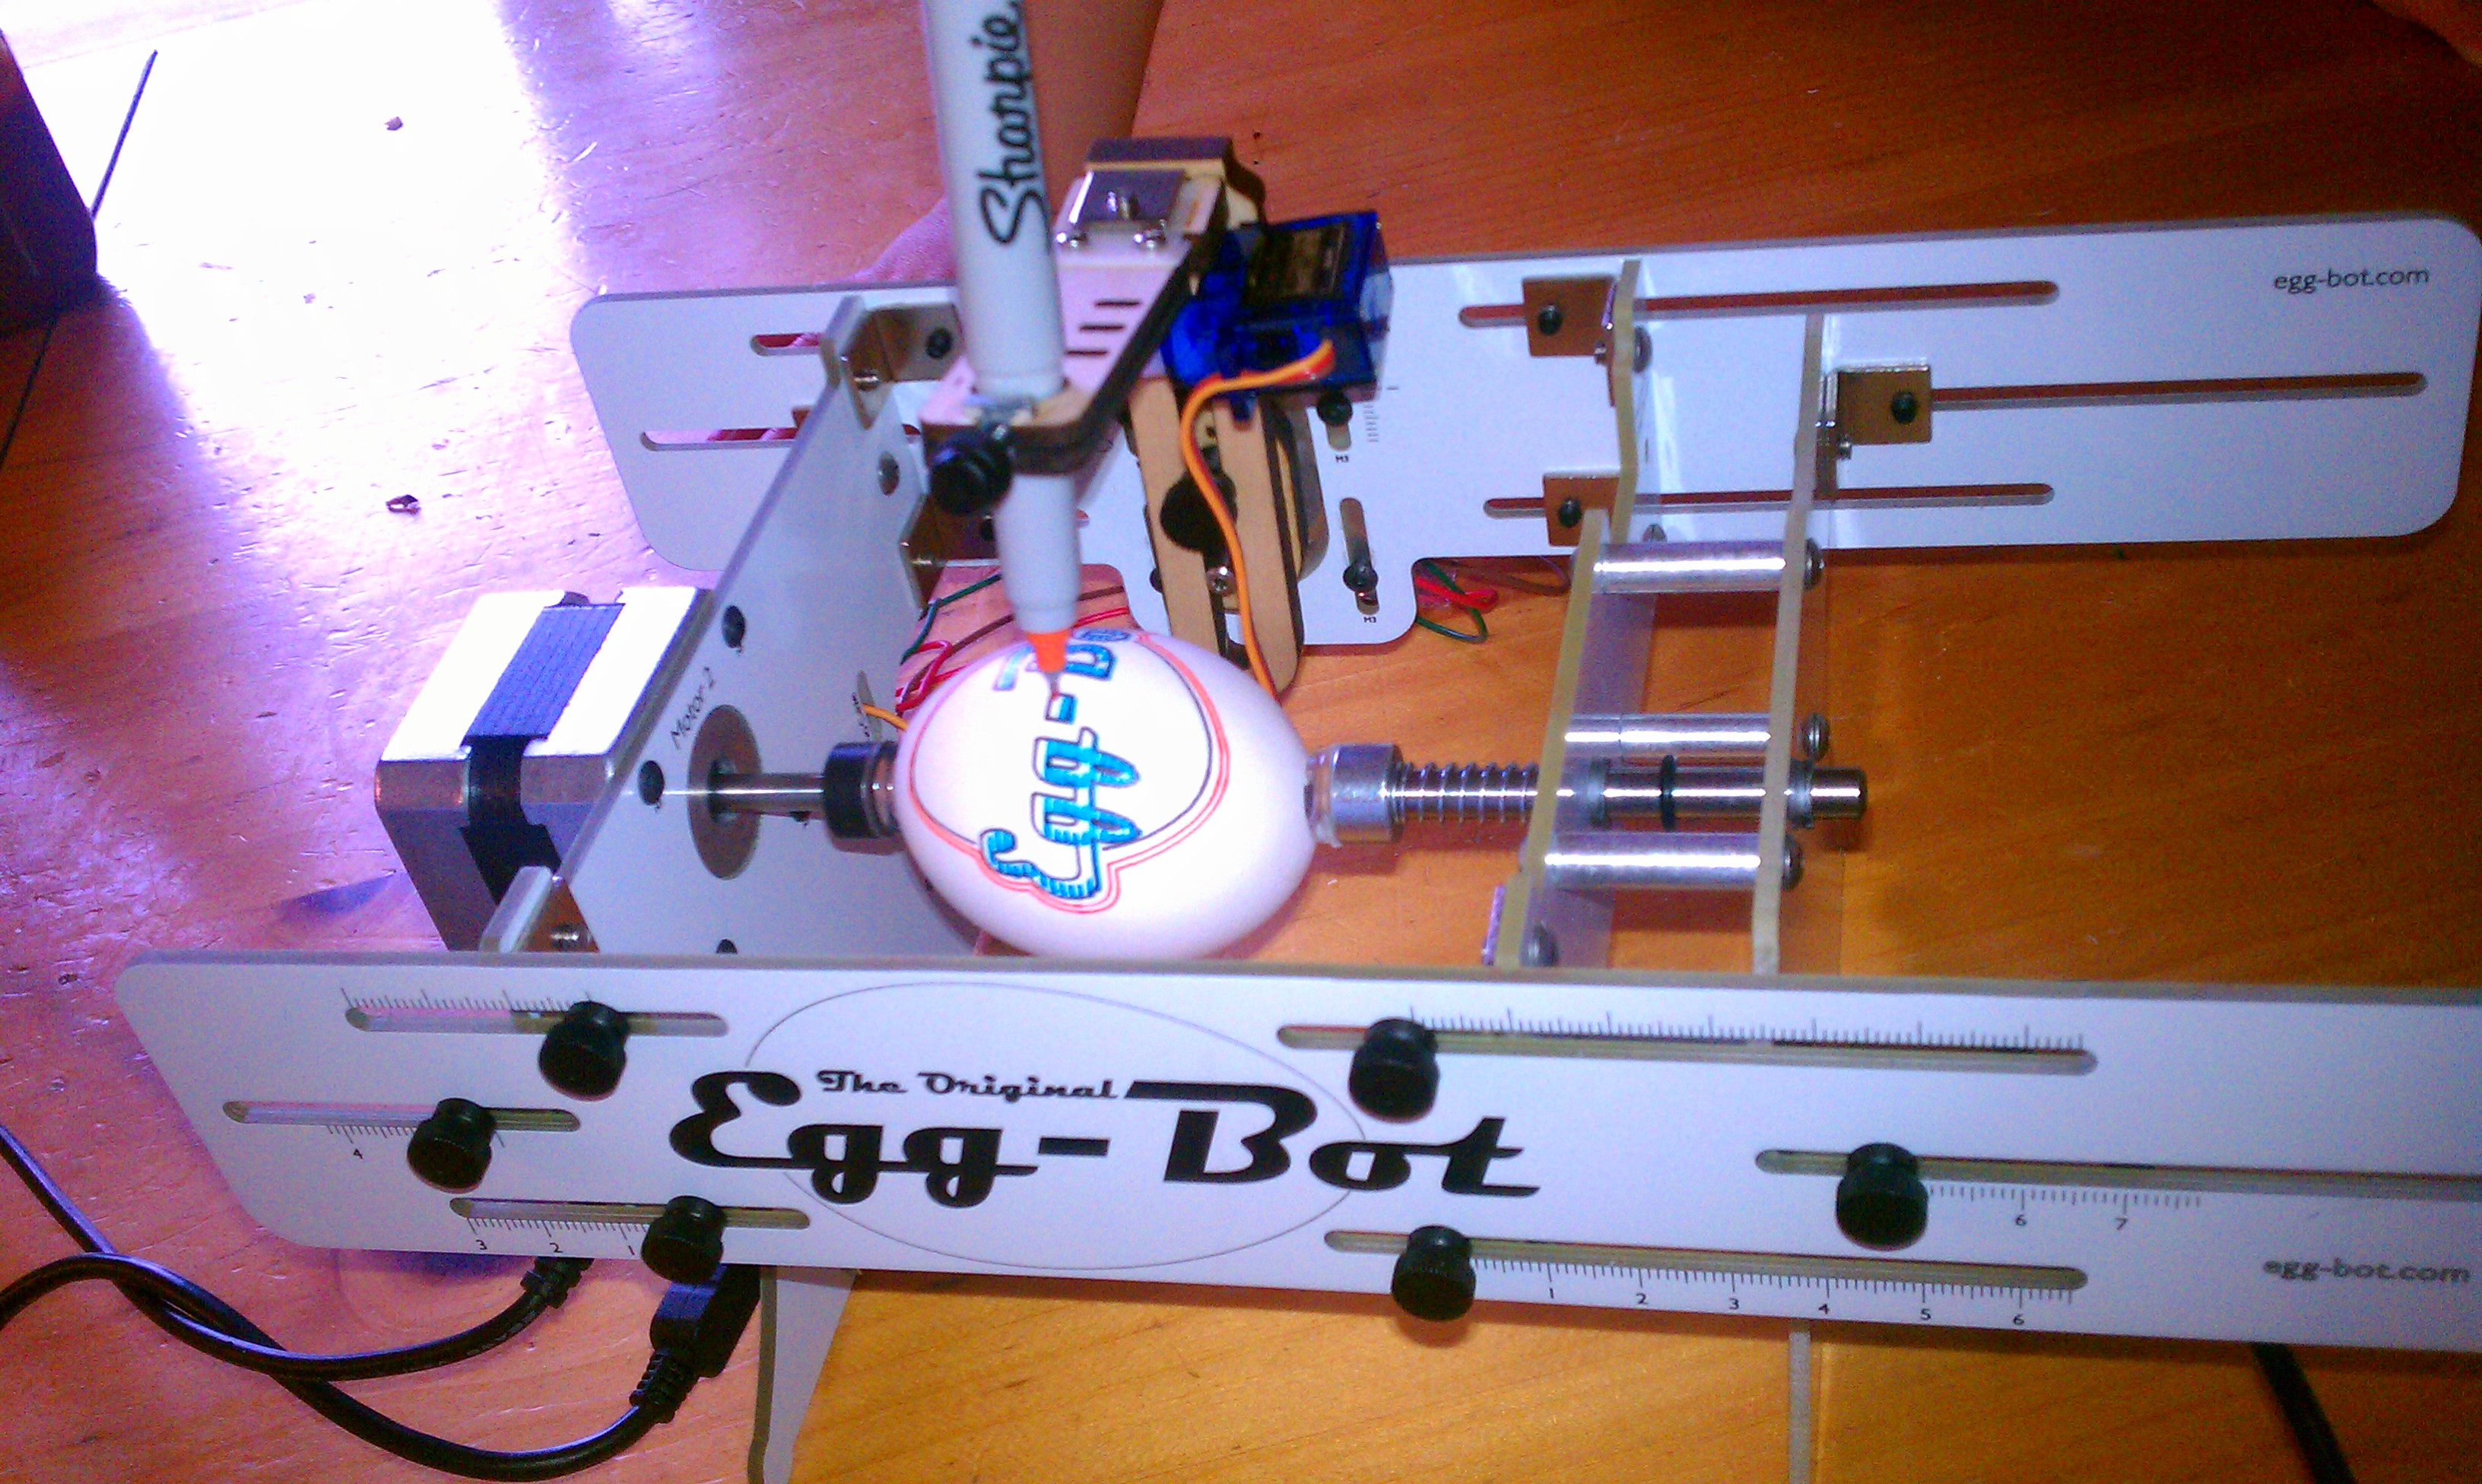 Picture of Egg-bot Creations and Tips